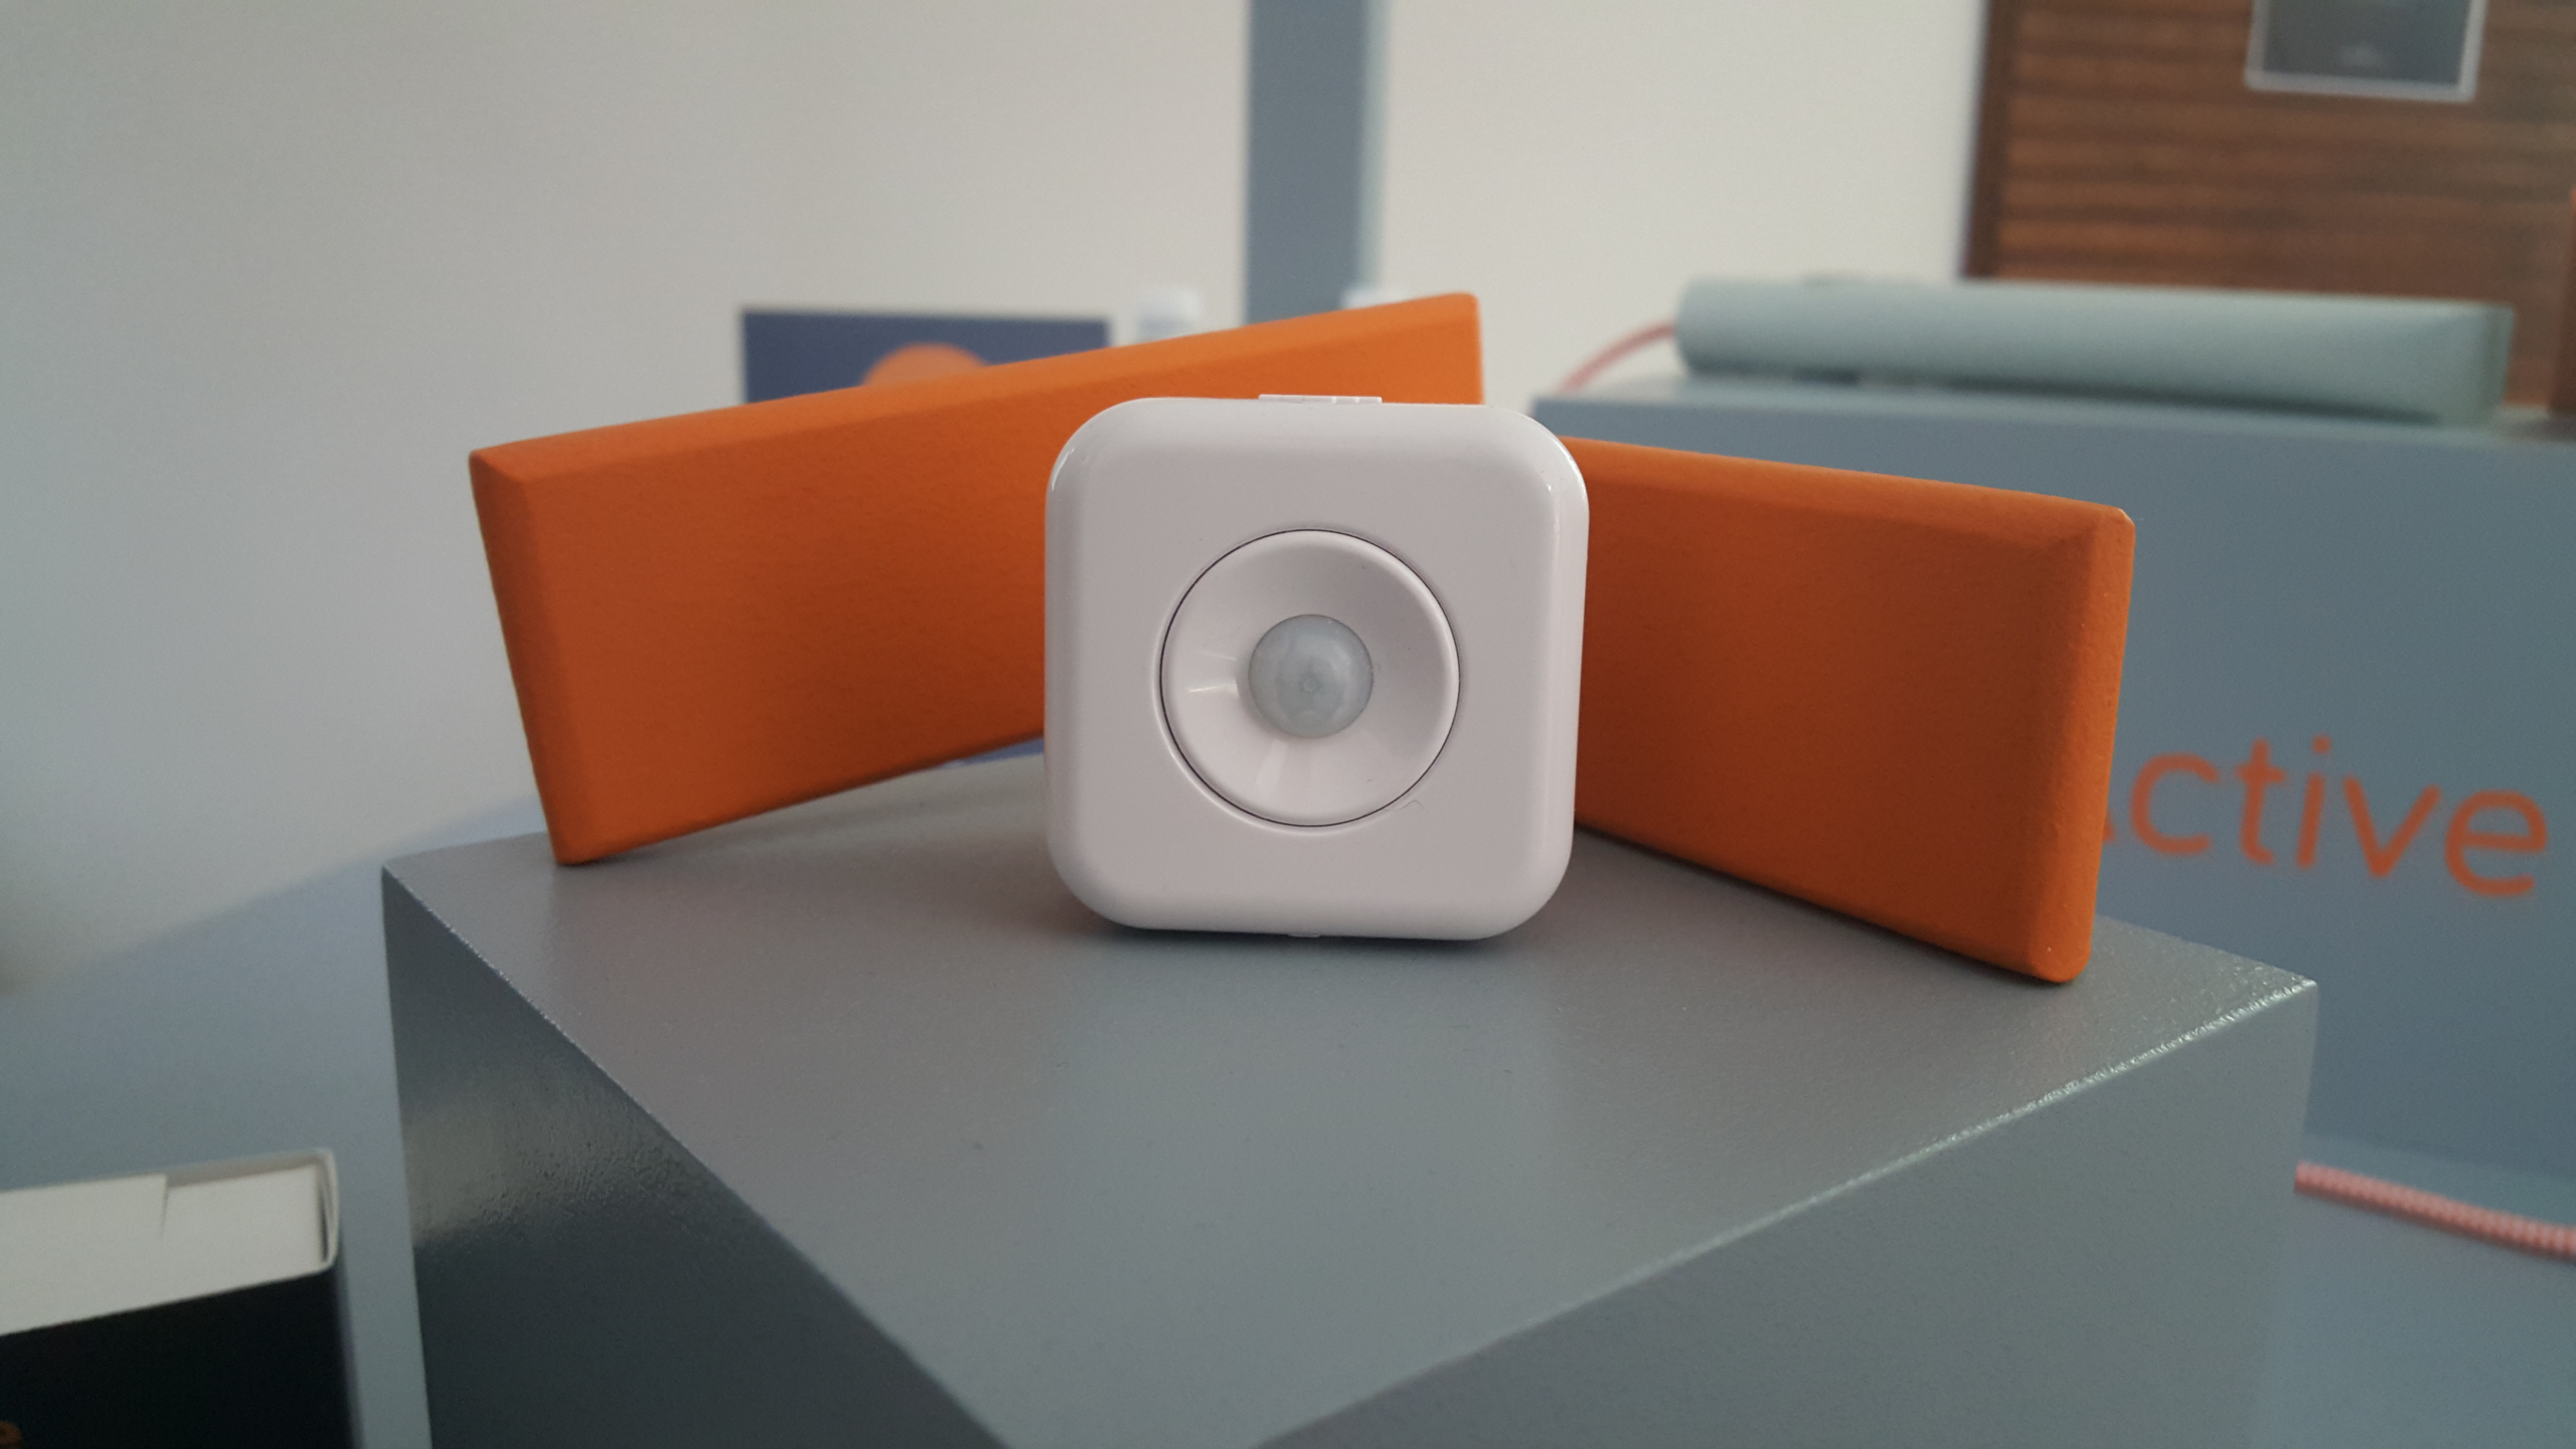 hive unveils sleek new smart thermostat and u0027connected home